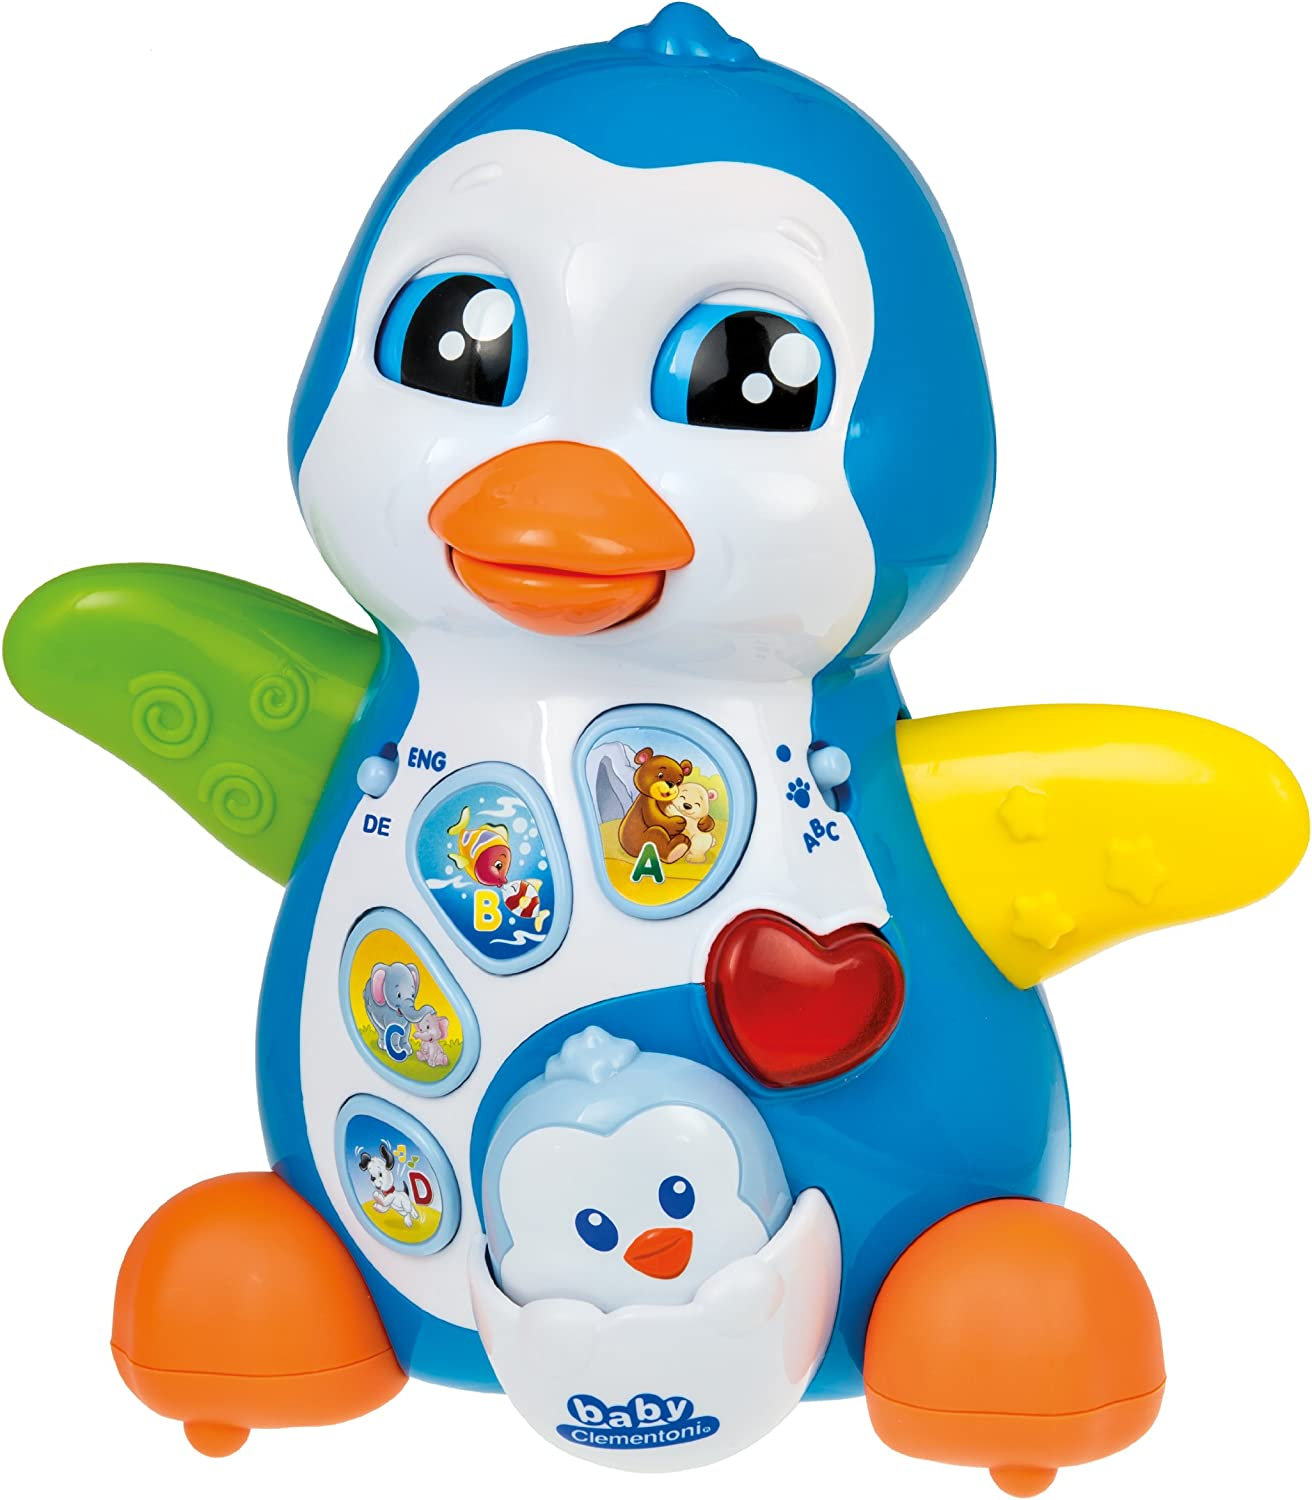 Clementoni 69286.6 Penguin Mummy with Puck Talking Electronic Educational Toy